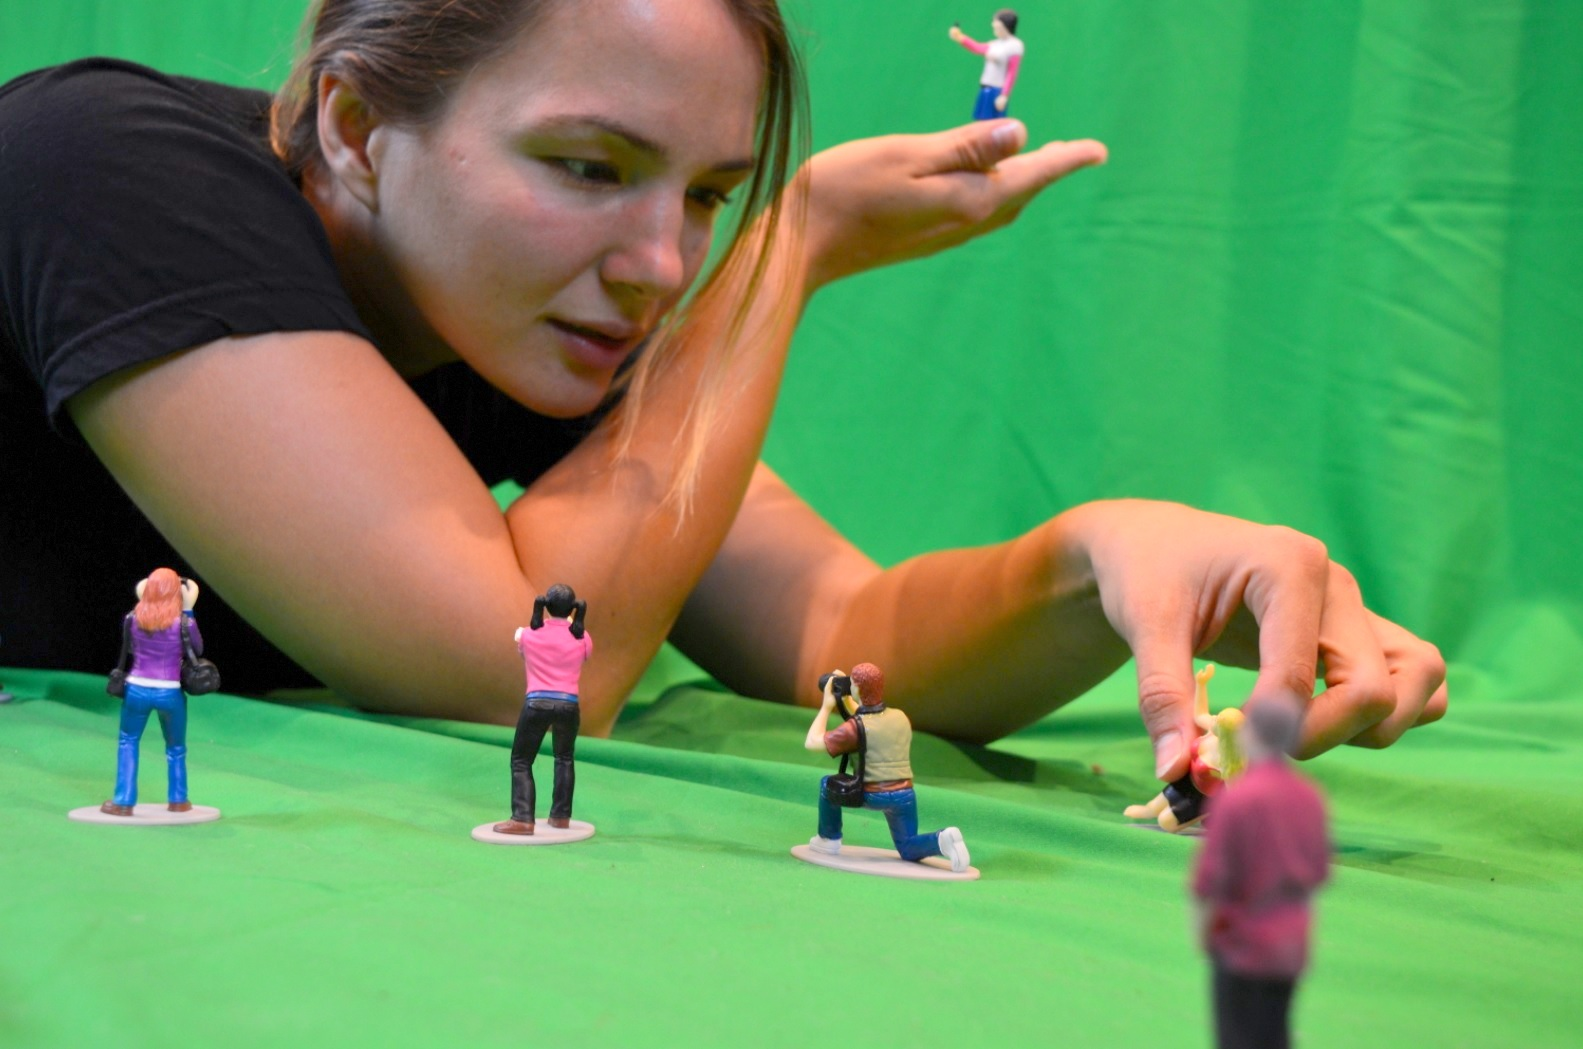 The model Koa leans over a selection of tiny people, interacting with their expressions.